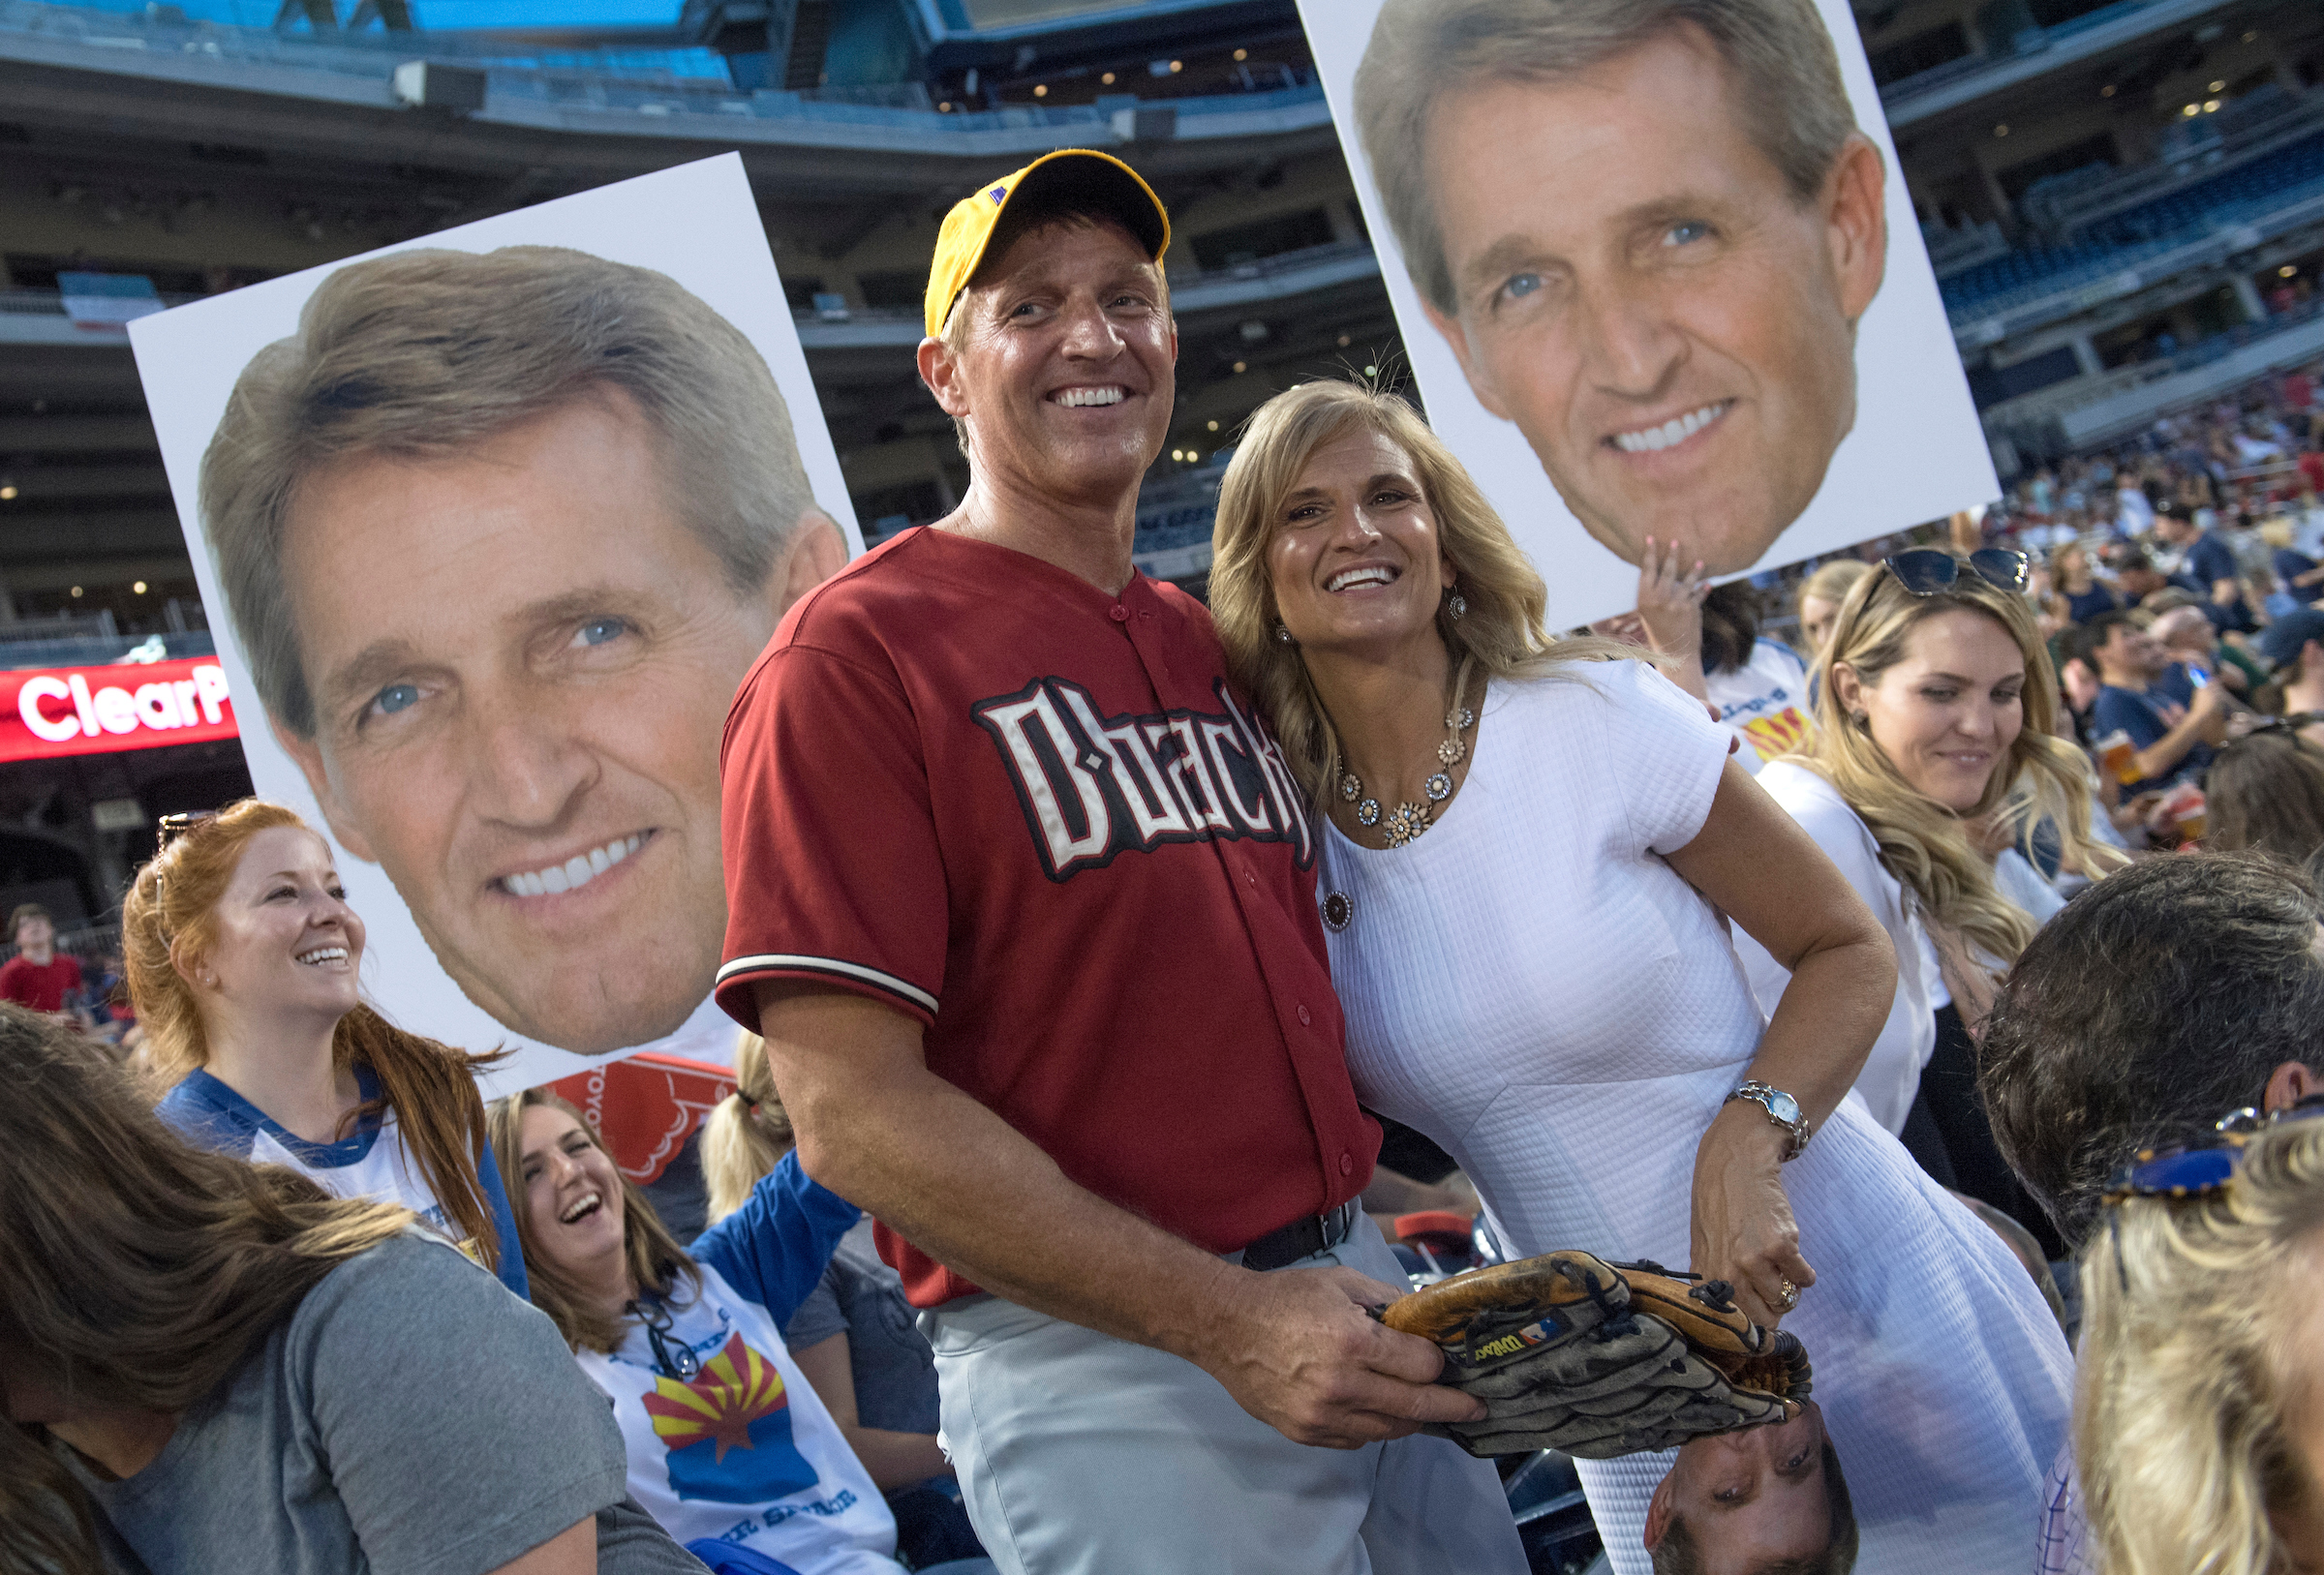 UNITED STATES - JUNE 15: Sen. Jeff Flake and his wife Cheryl are seen in the stands during the 56th Congressional Baseball Game at Nationals Park on June 15, 2017. (Photo By Tom Williams/CQ Roll Call)